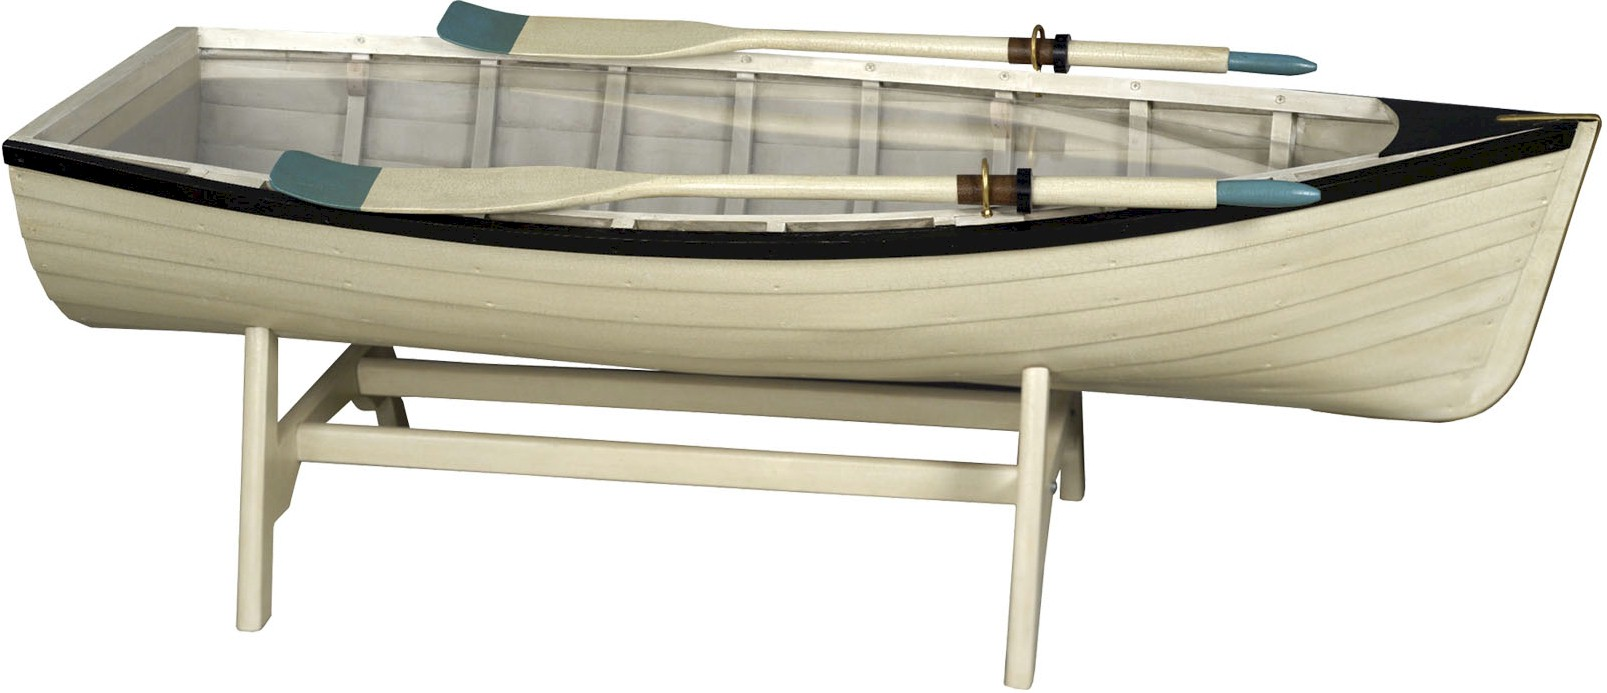 Beau ... To Enlarge Coffee Table Fascinatingoffeehop Imagesoncepthapedtupendous  Boat Photos Inspirations With End Tables Row ...